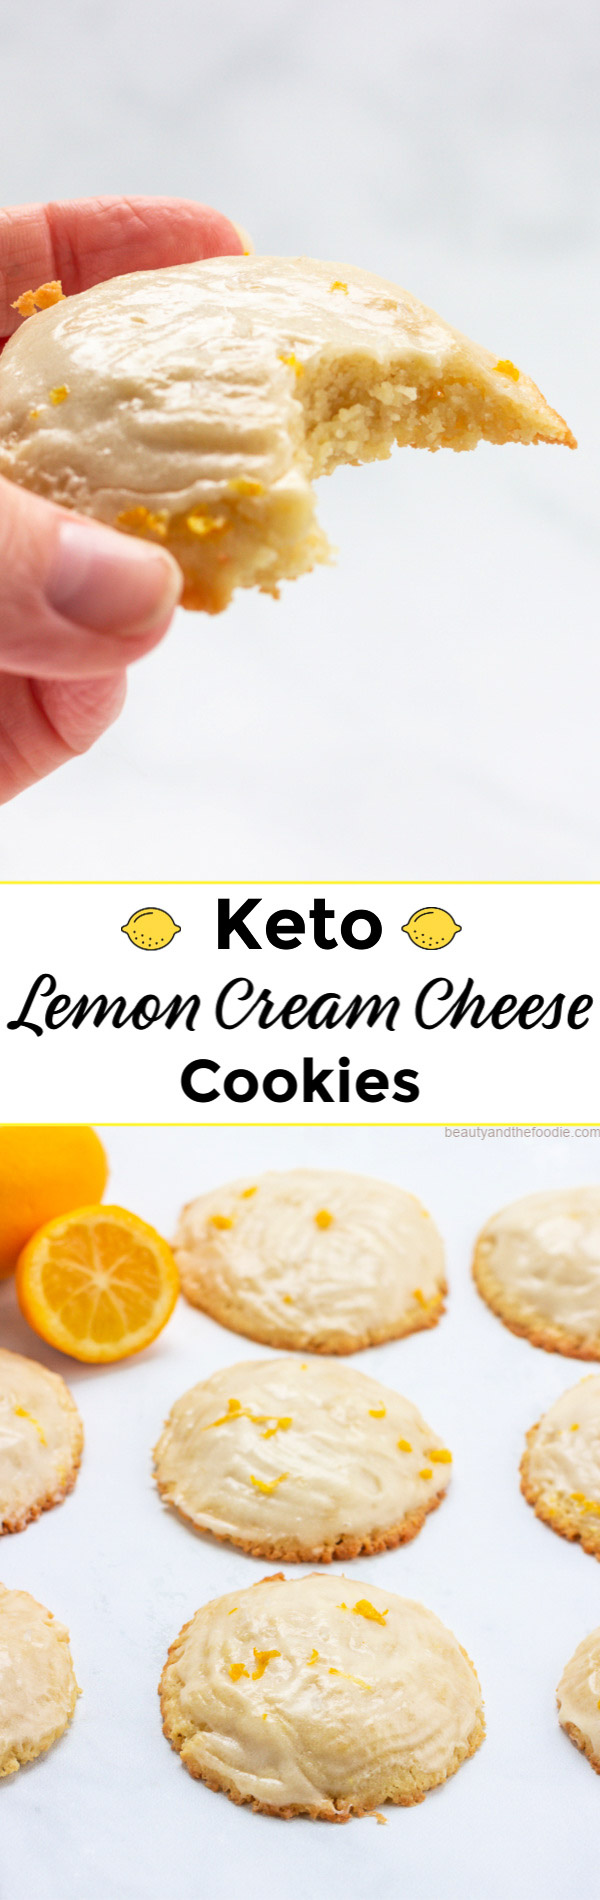 Keto Lemon Cream Cheese Cookies